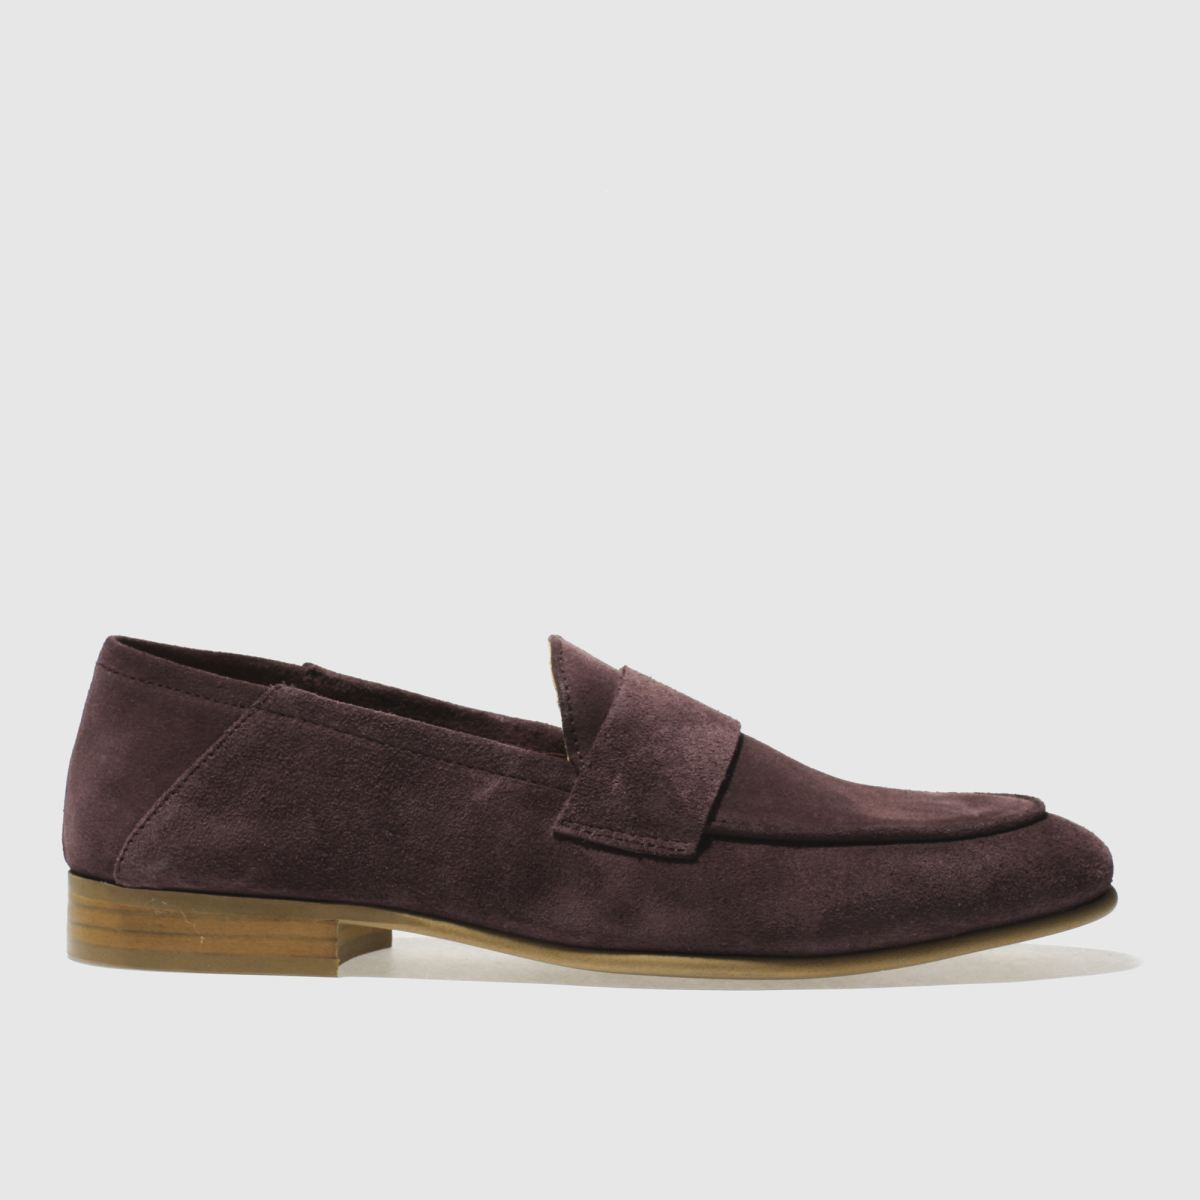 Schuh Burgundy Taylor Shoes